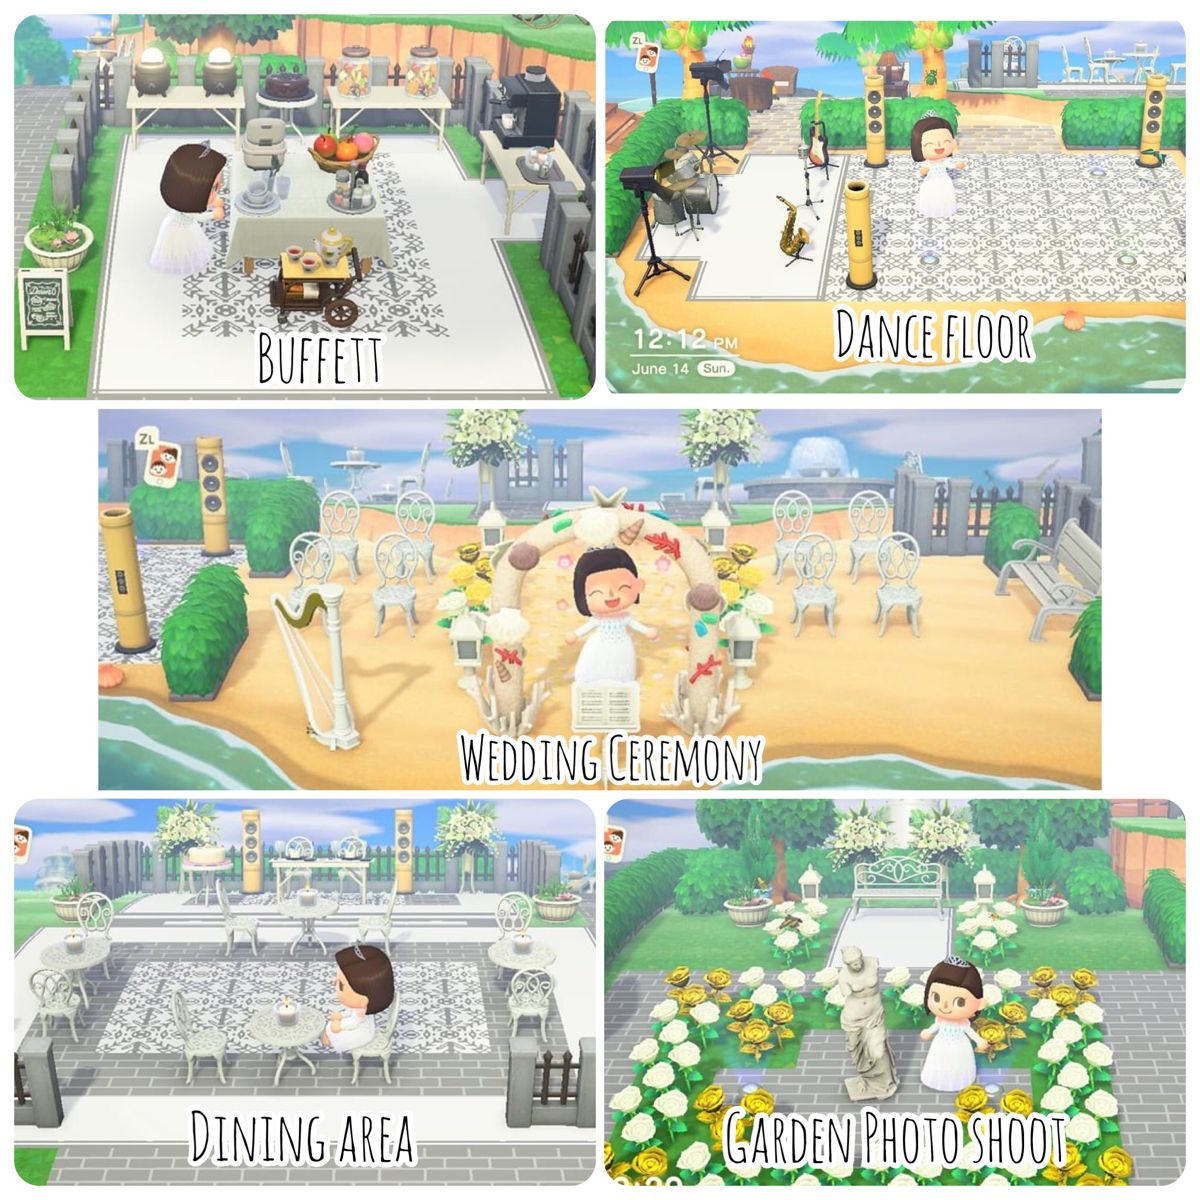 Acnh Beach Wedding Venue In 2020 Animal Crossing Game New Animal Crossing Animal Crossing Qr